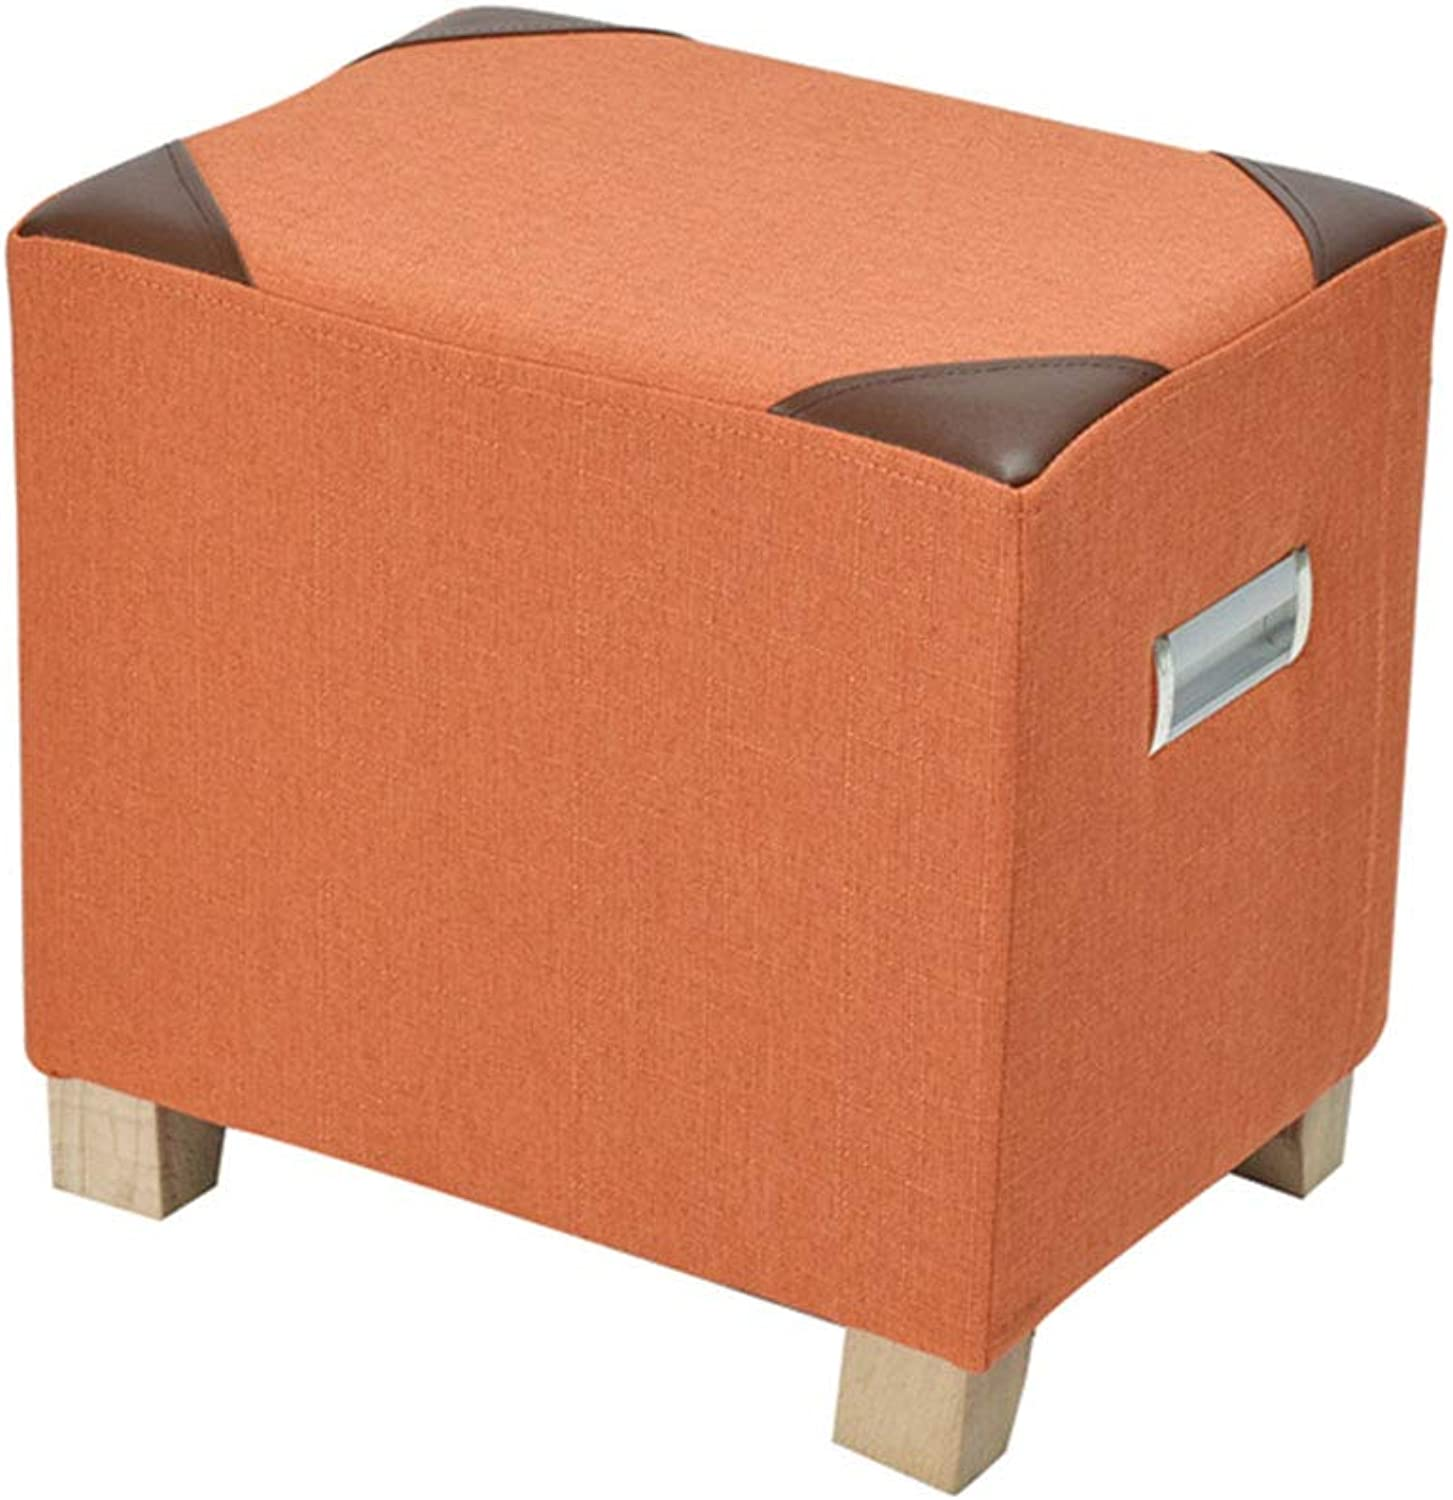 Sofa Stool Change shoes Stool Linen Simple Multifunctional Coffee Table Stool Makeup Stool (color   orange)